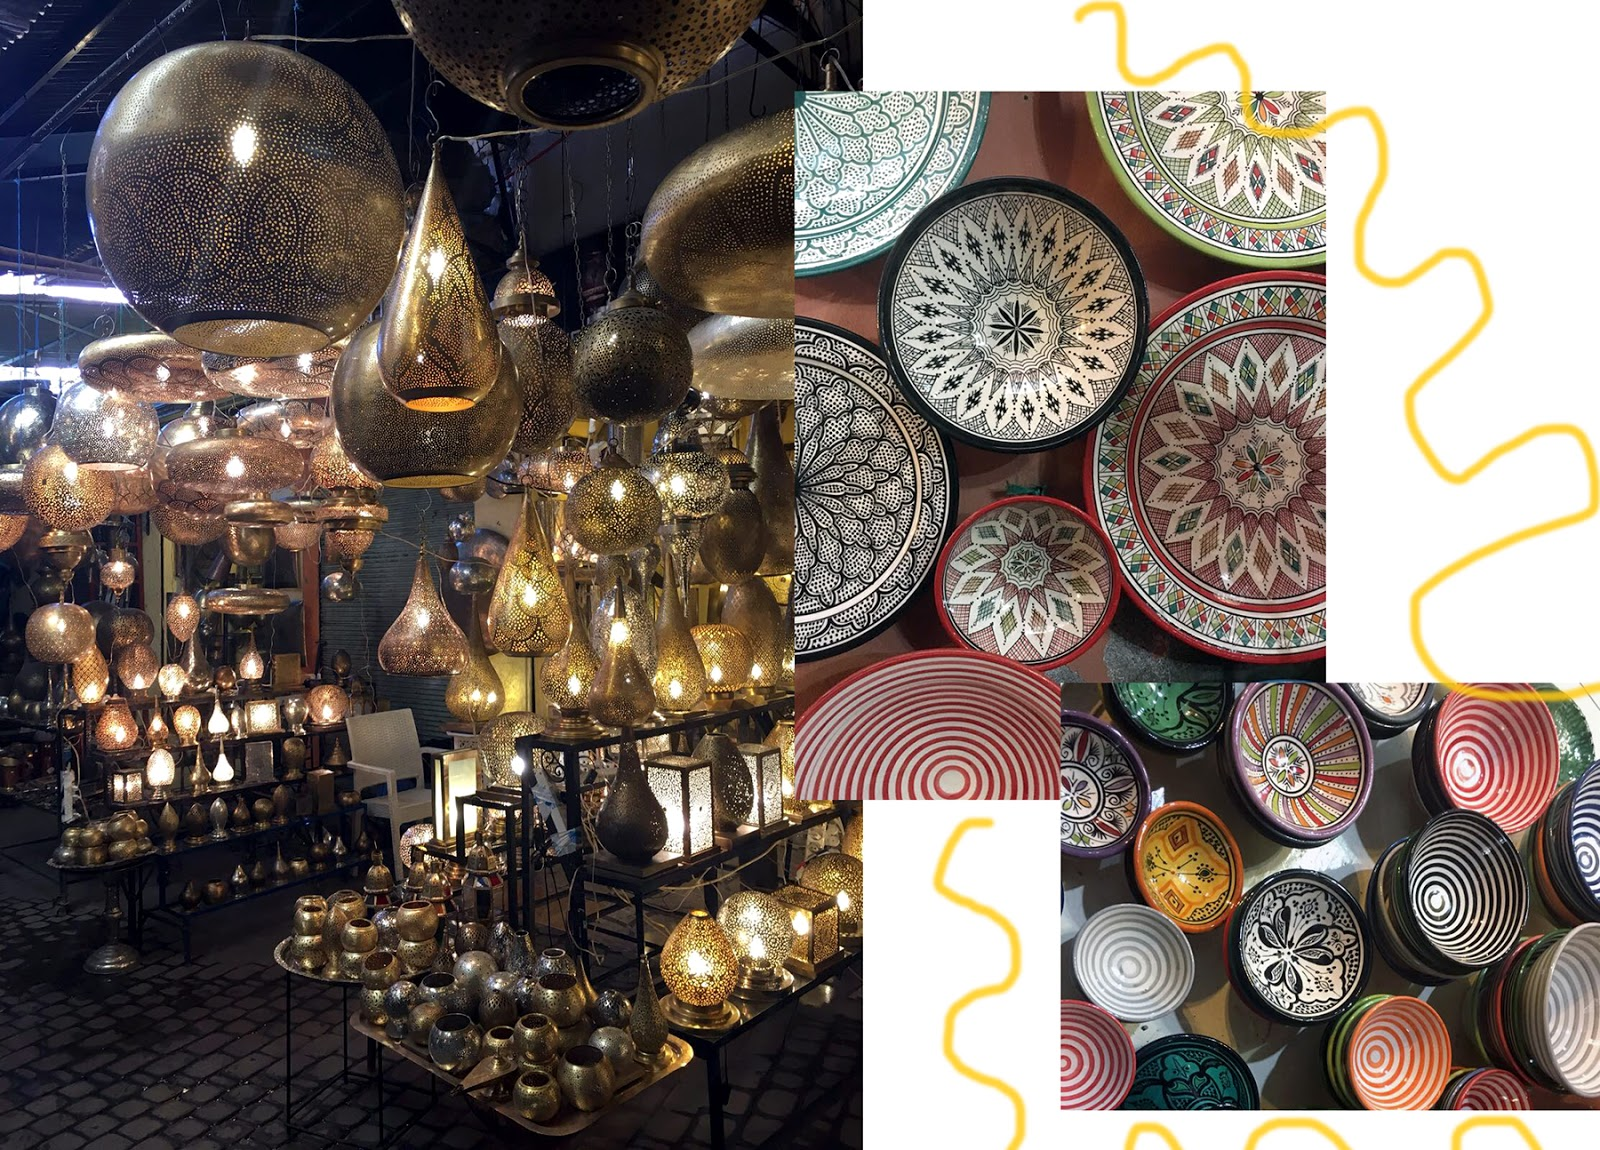 Euriental | luxury travel & style | Photo diary of Marrakech, Morocco, souk